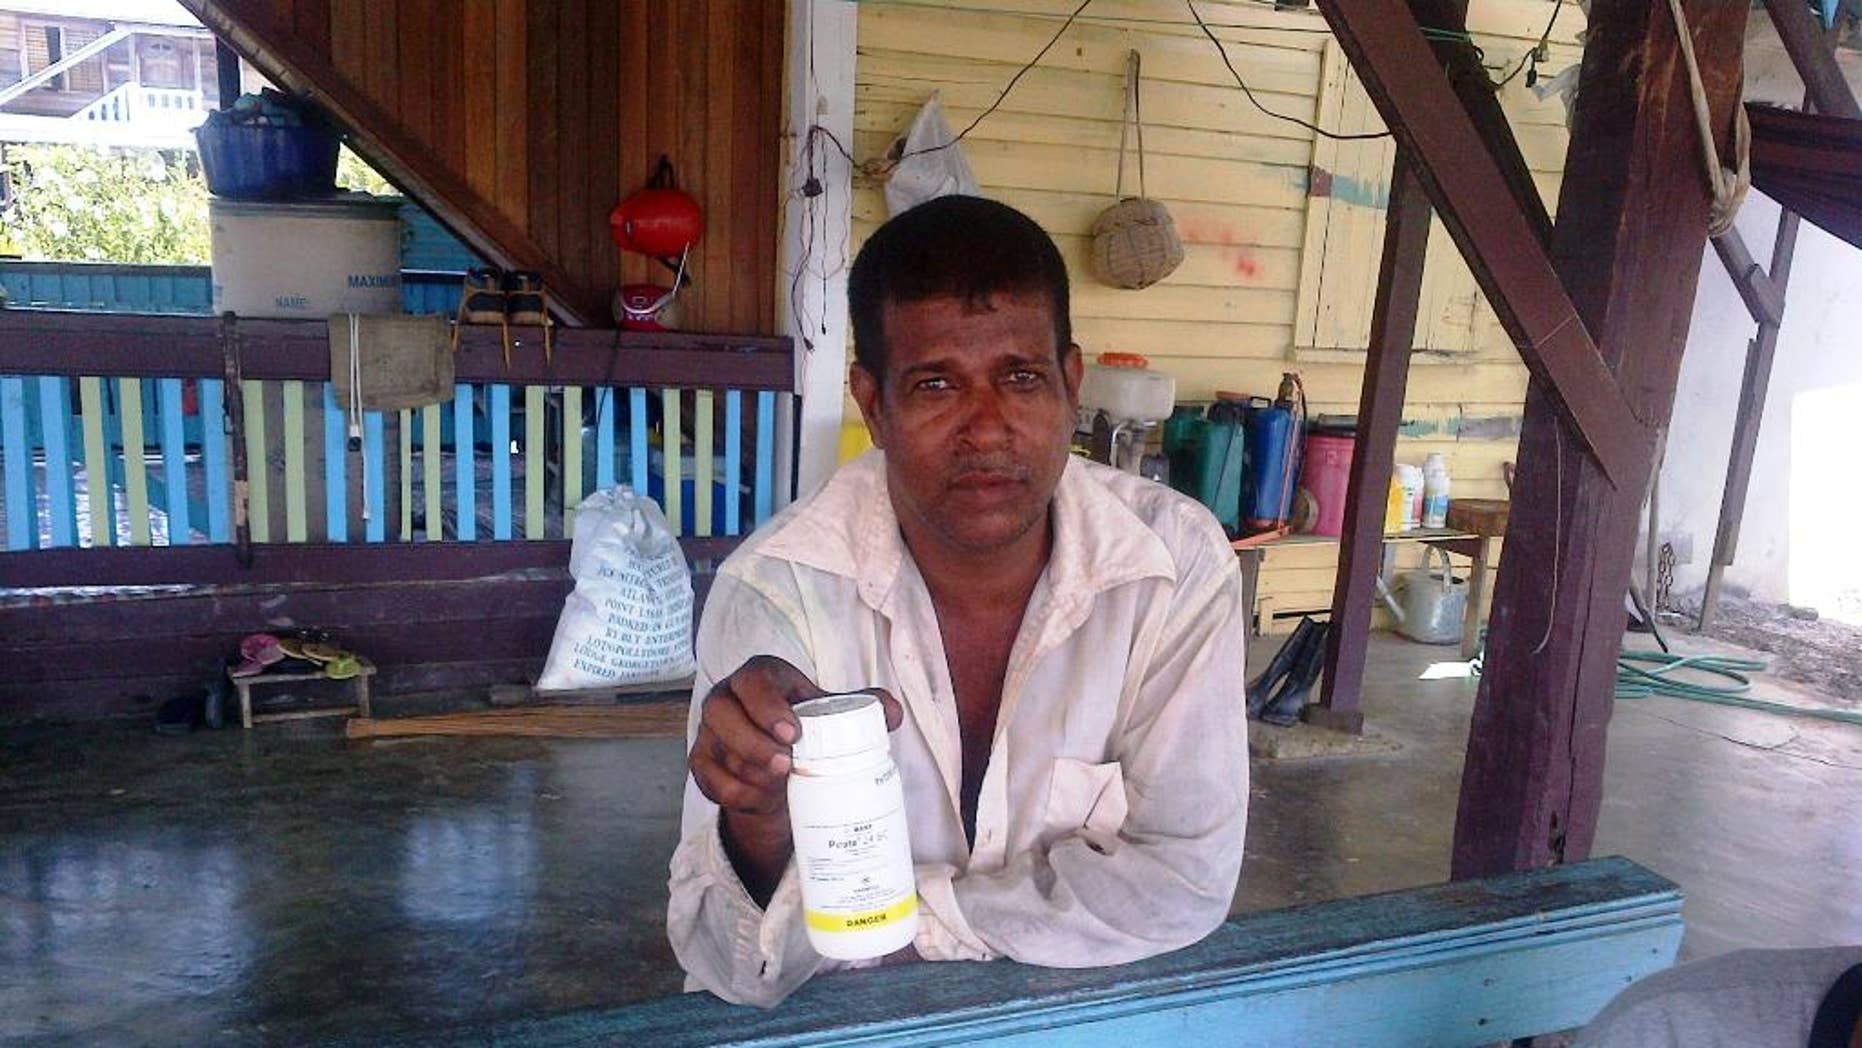 In this Monday, Oct. 6, 2014 photo, Vijai Ramlackhan holds a container of pesticide similar to the type his 17-year-old son used to commit suicide on their farm in the Berbice region of Guyana, a country that the World Health Organization says has the highest rate of suicide in the world. (AP Photo/Bert Wilkinson)